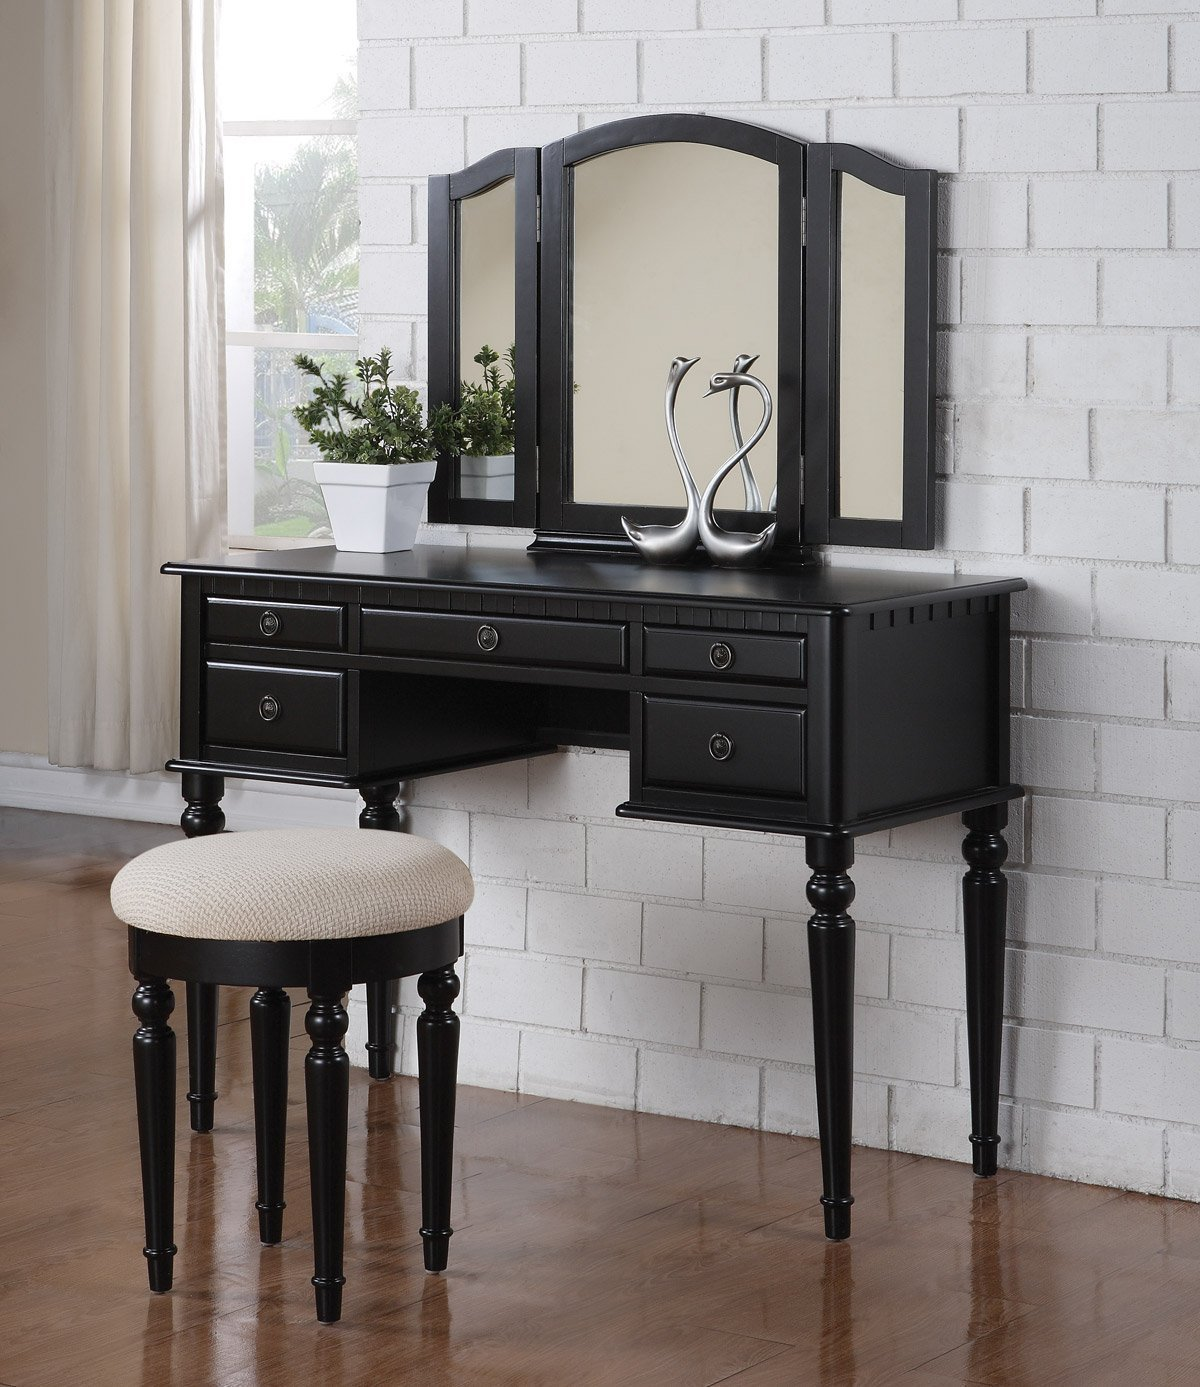 Black Vanity Table With Drawers.  3 Pc Makeup Vanity Set Table with 5 Drawers Stool and Mirror in Black Finish Cheap find